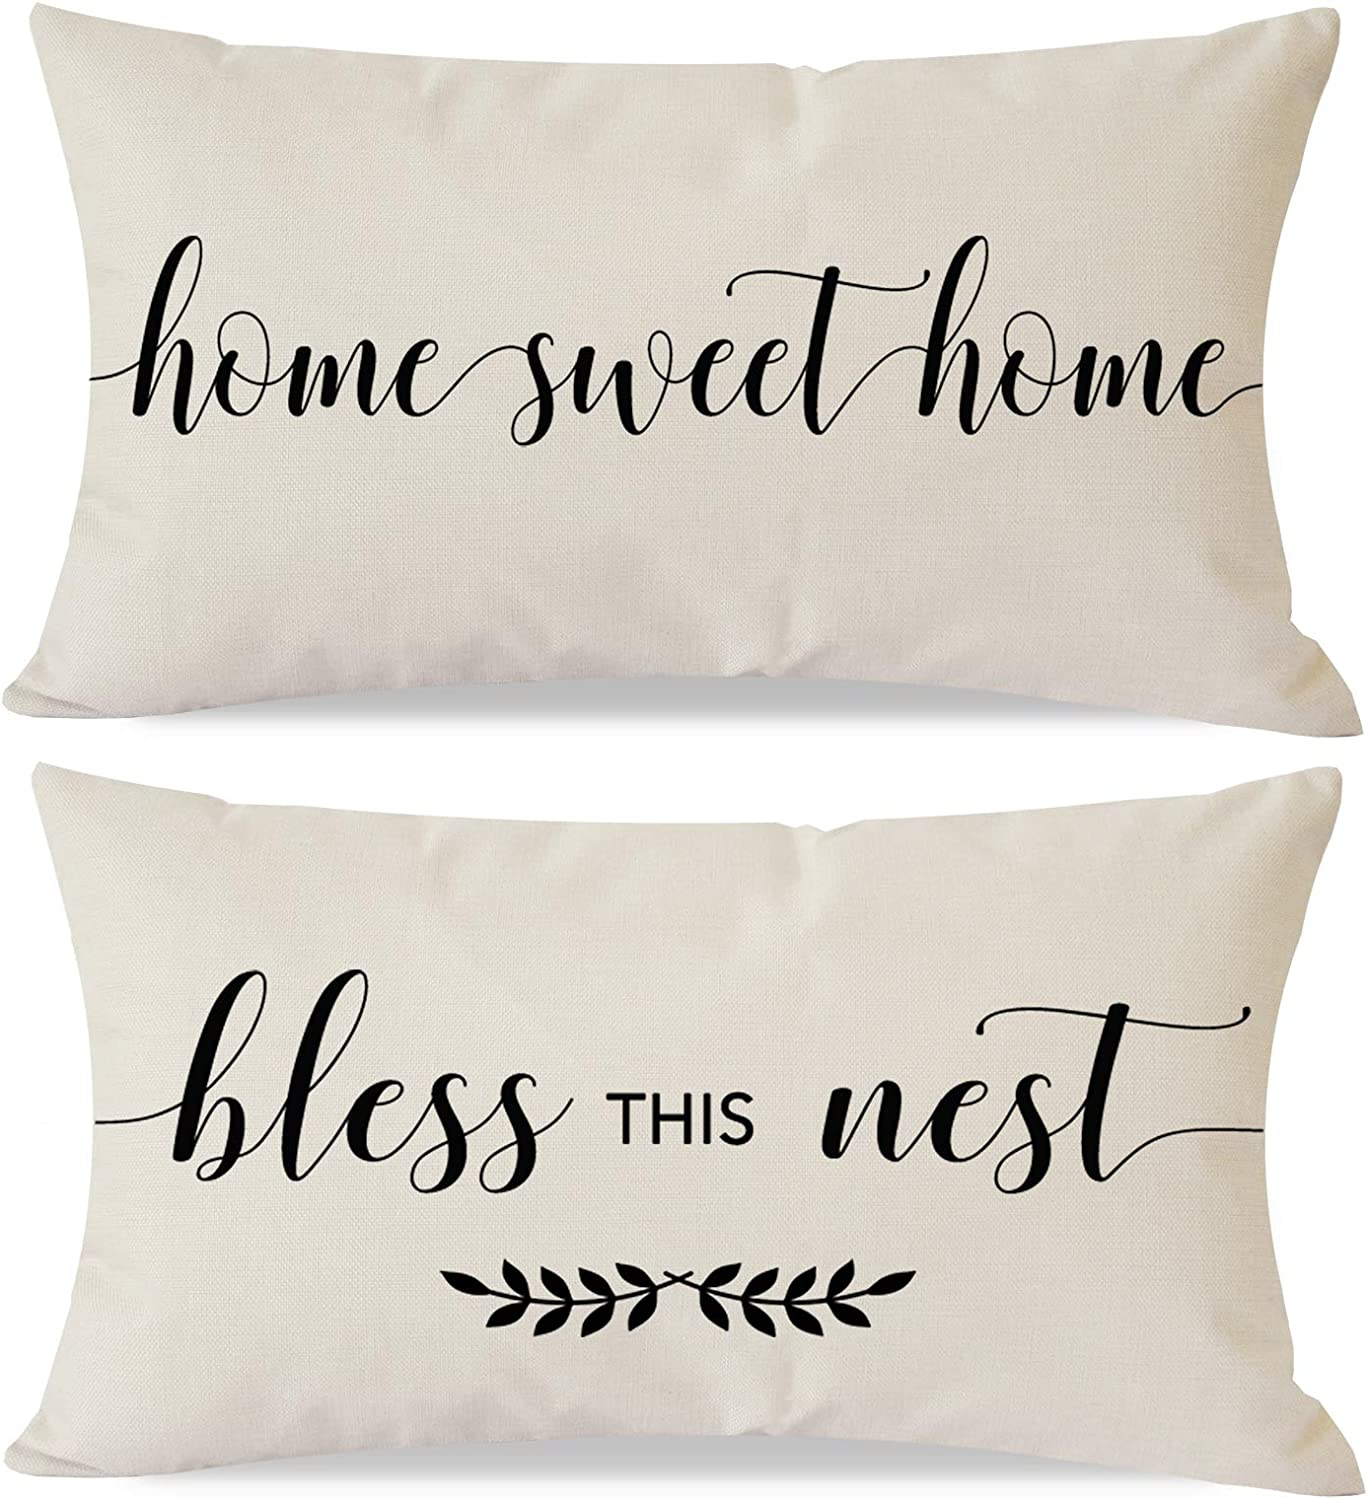 PANDICORN Set of 2 Farmhouse Pillow Covers 12x20 with Quotes Home Sweet Home Bless This Nest for Home Décor, Lumbar Throw Pillow Cases for Living Room Porch Chair